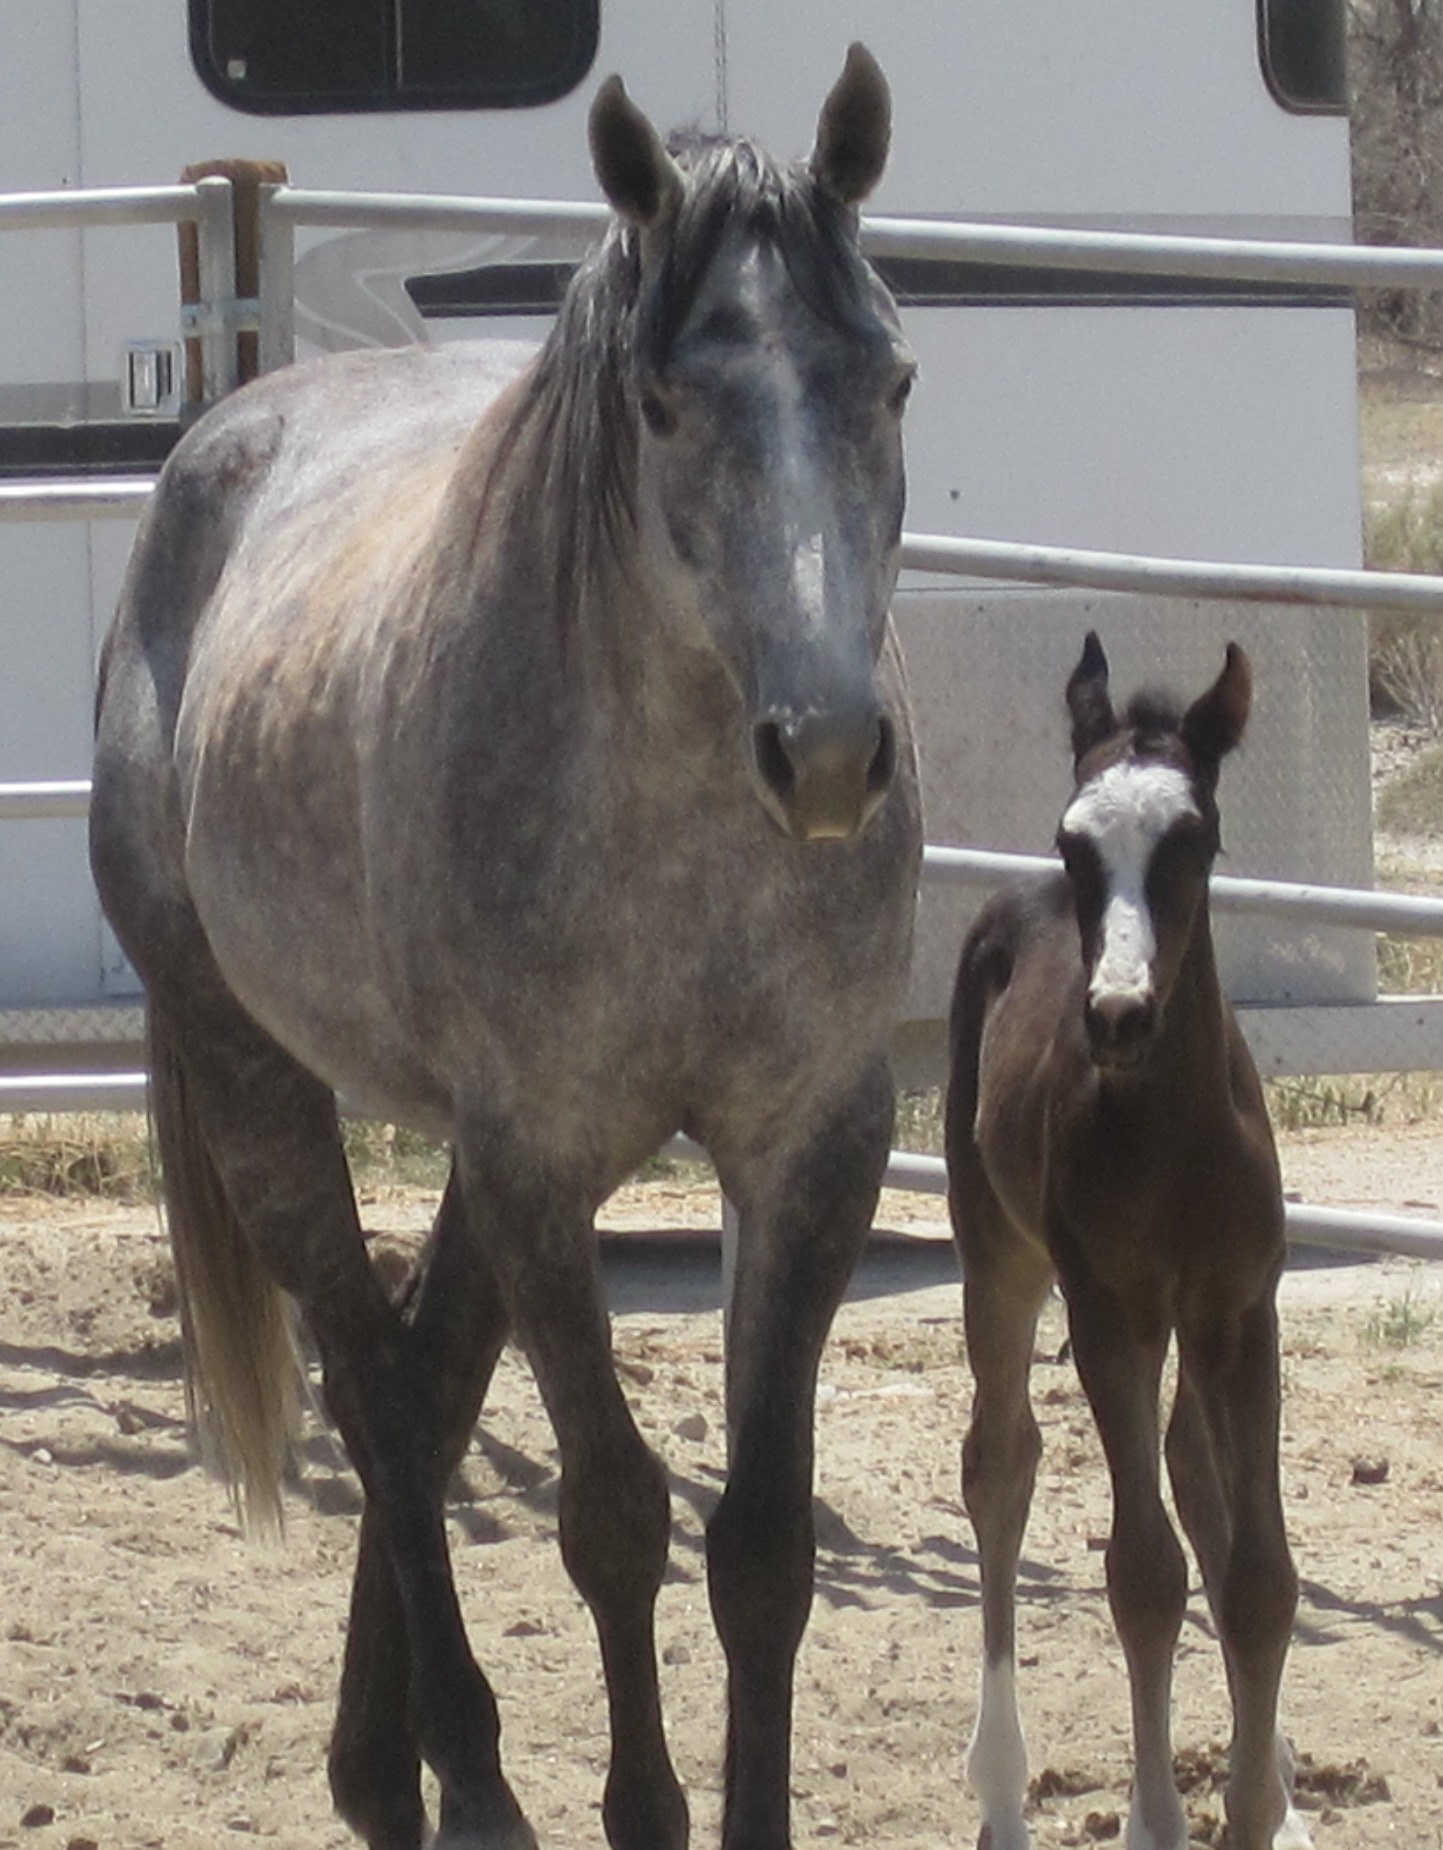 She had her very healthy colt, Thunder